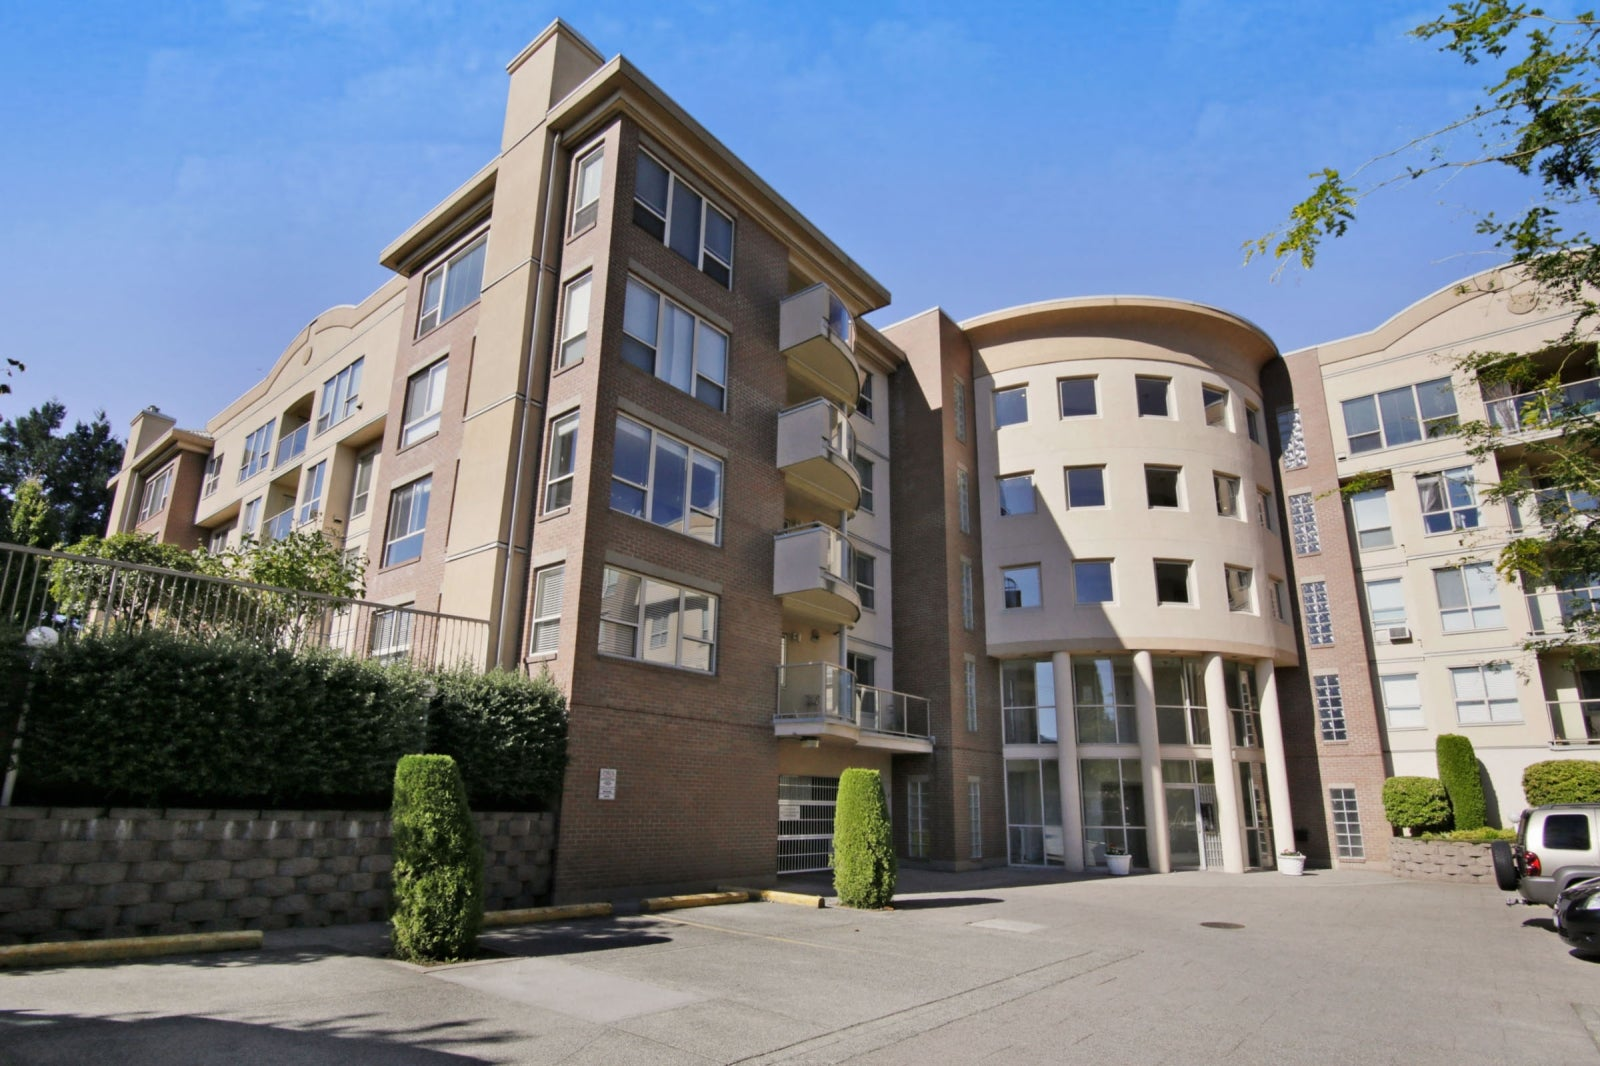 101 33731 MARSHALL ROAD - Central Abbotsford Apartment/Condo for sale, 2 Bedrooms (R2211464) #13